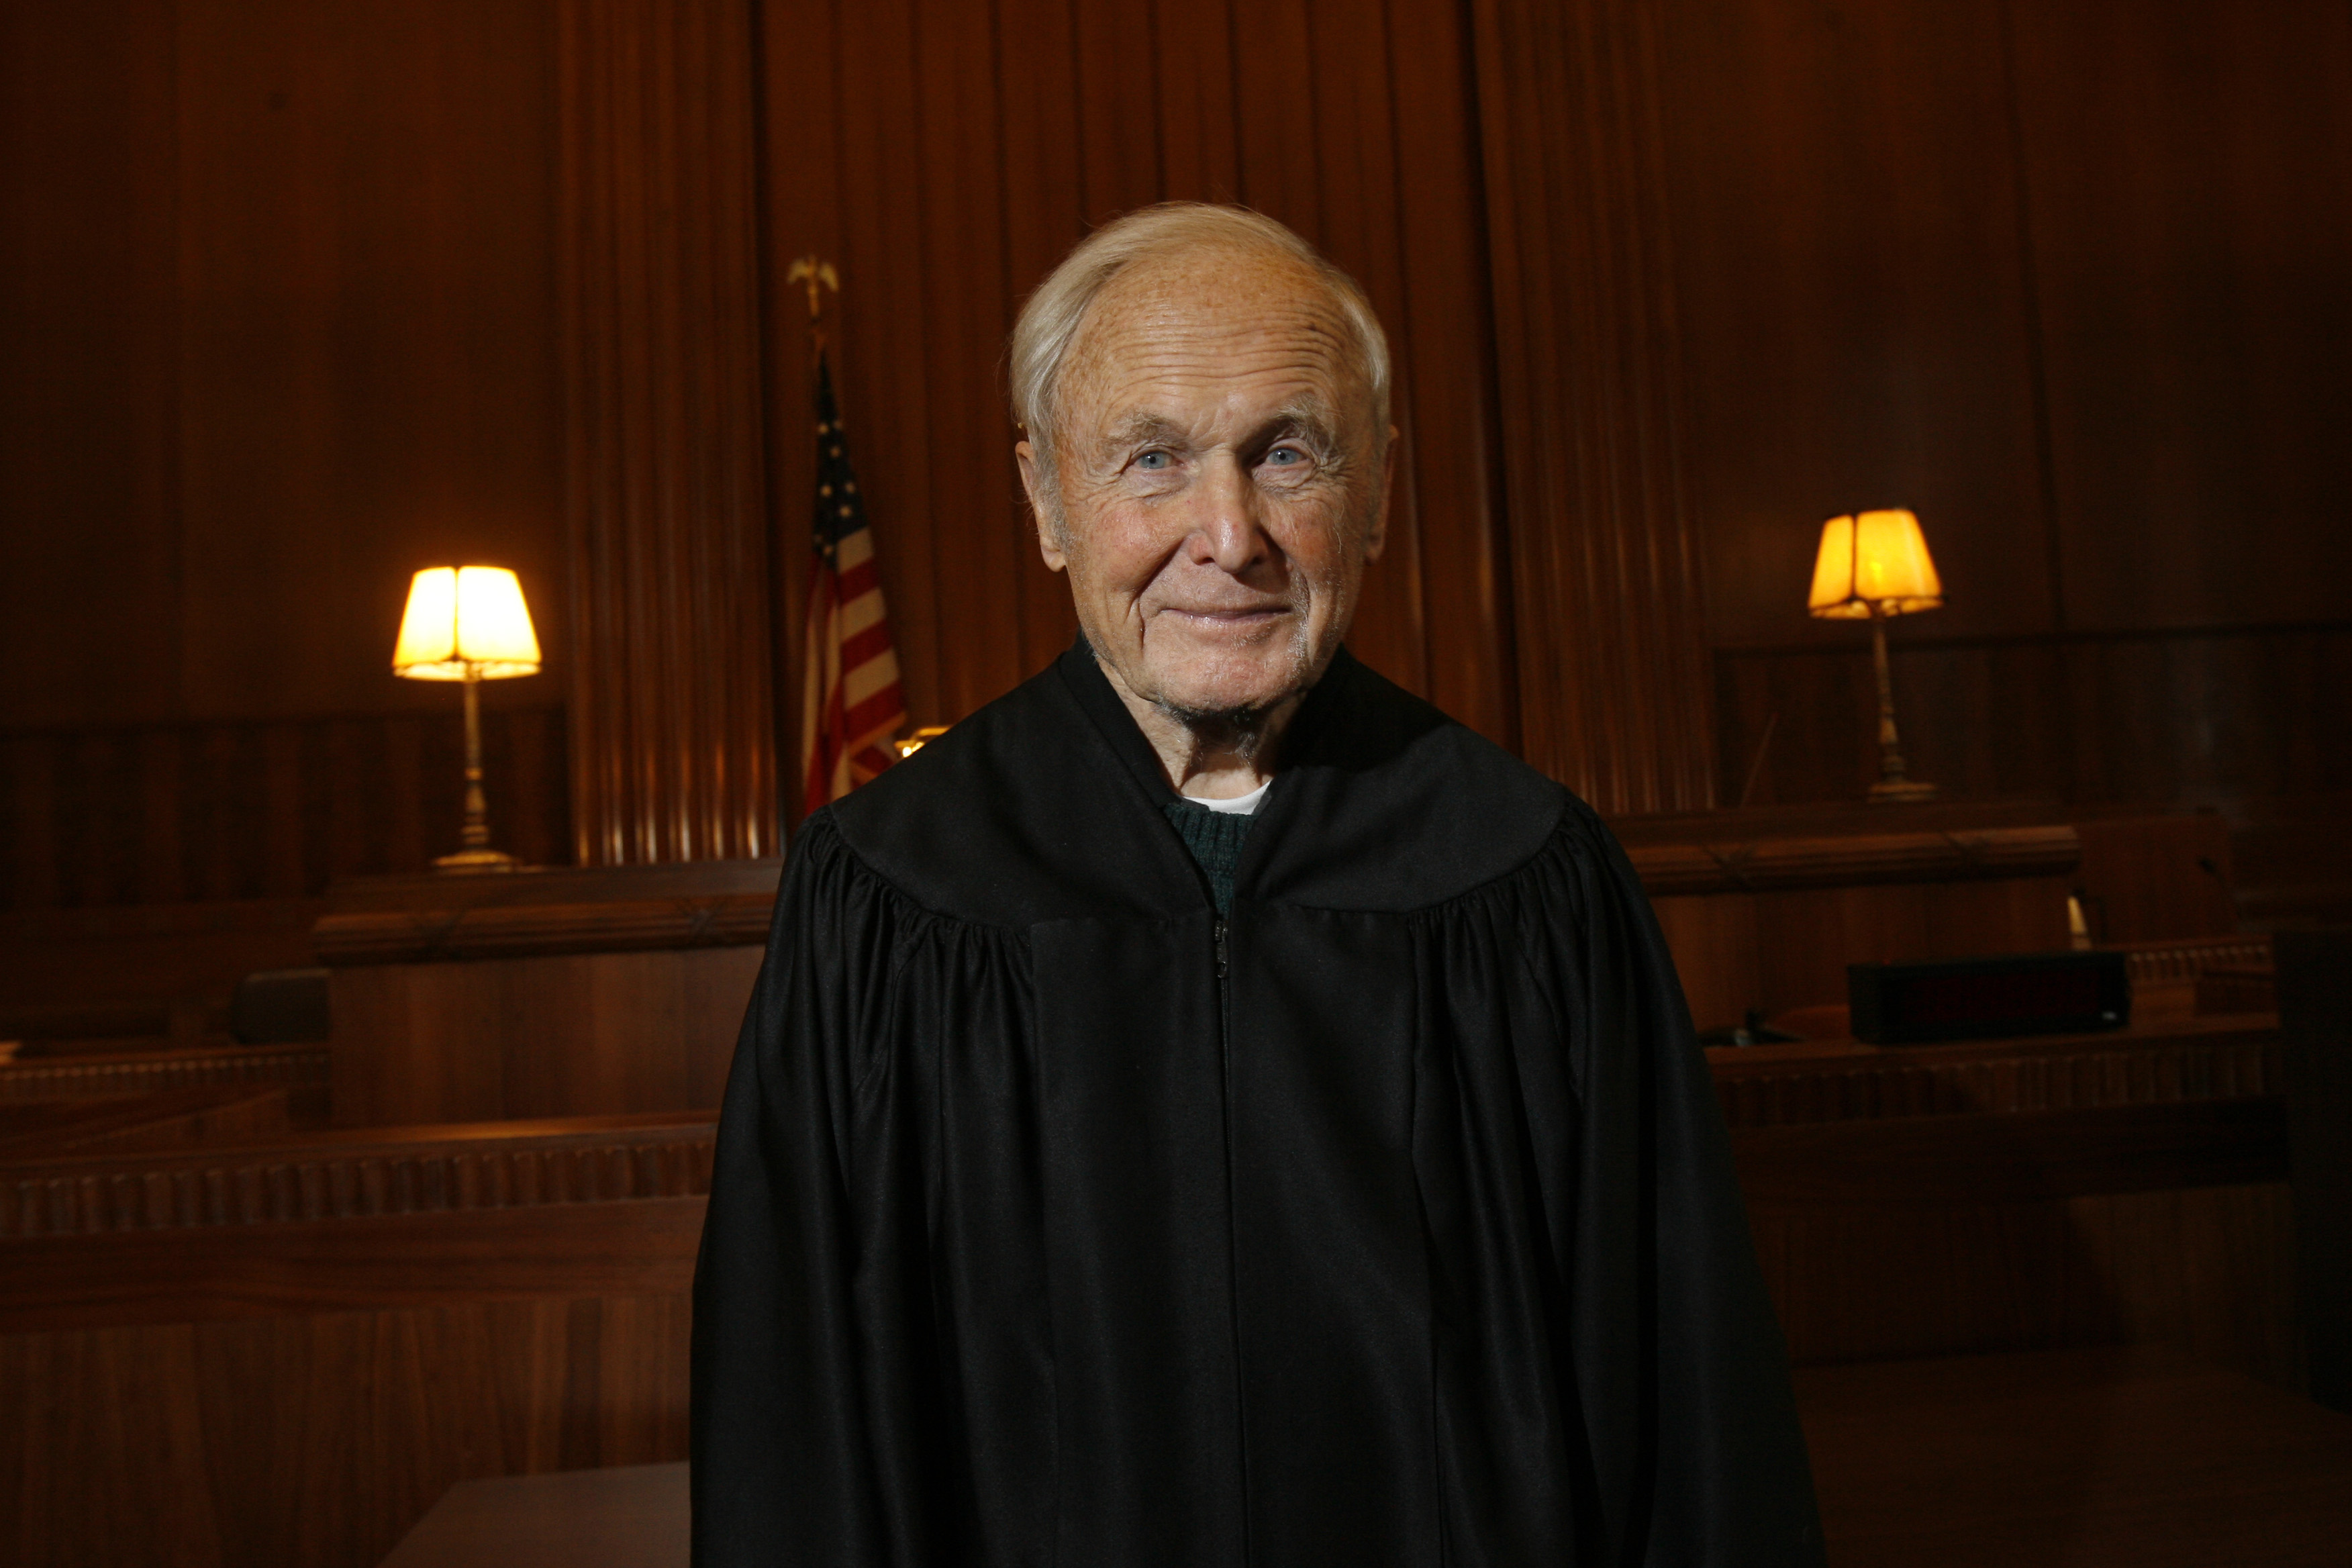 Judge John T. Curtin, in his courtroom at the federal courthouse in 2007. (Derek Gee/News file photo)